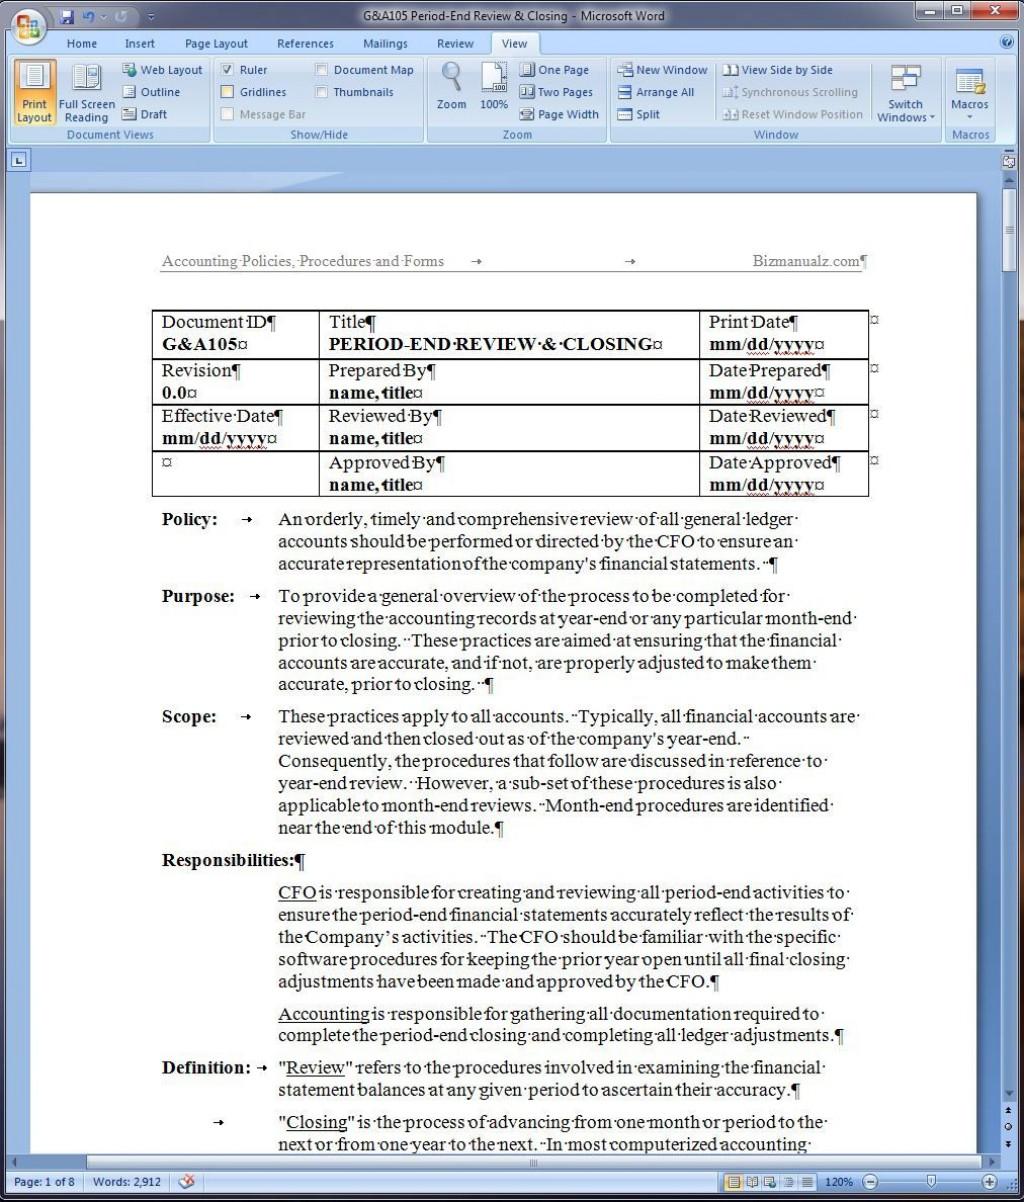 008 Amazing Policy And Procedure Template Example  Free Healthcare WordLarge